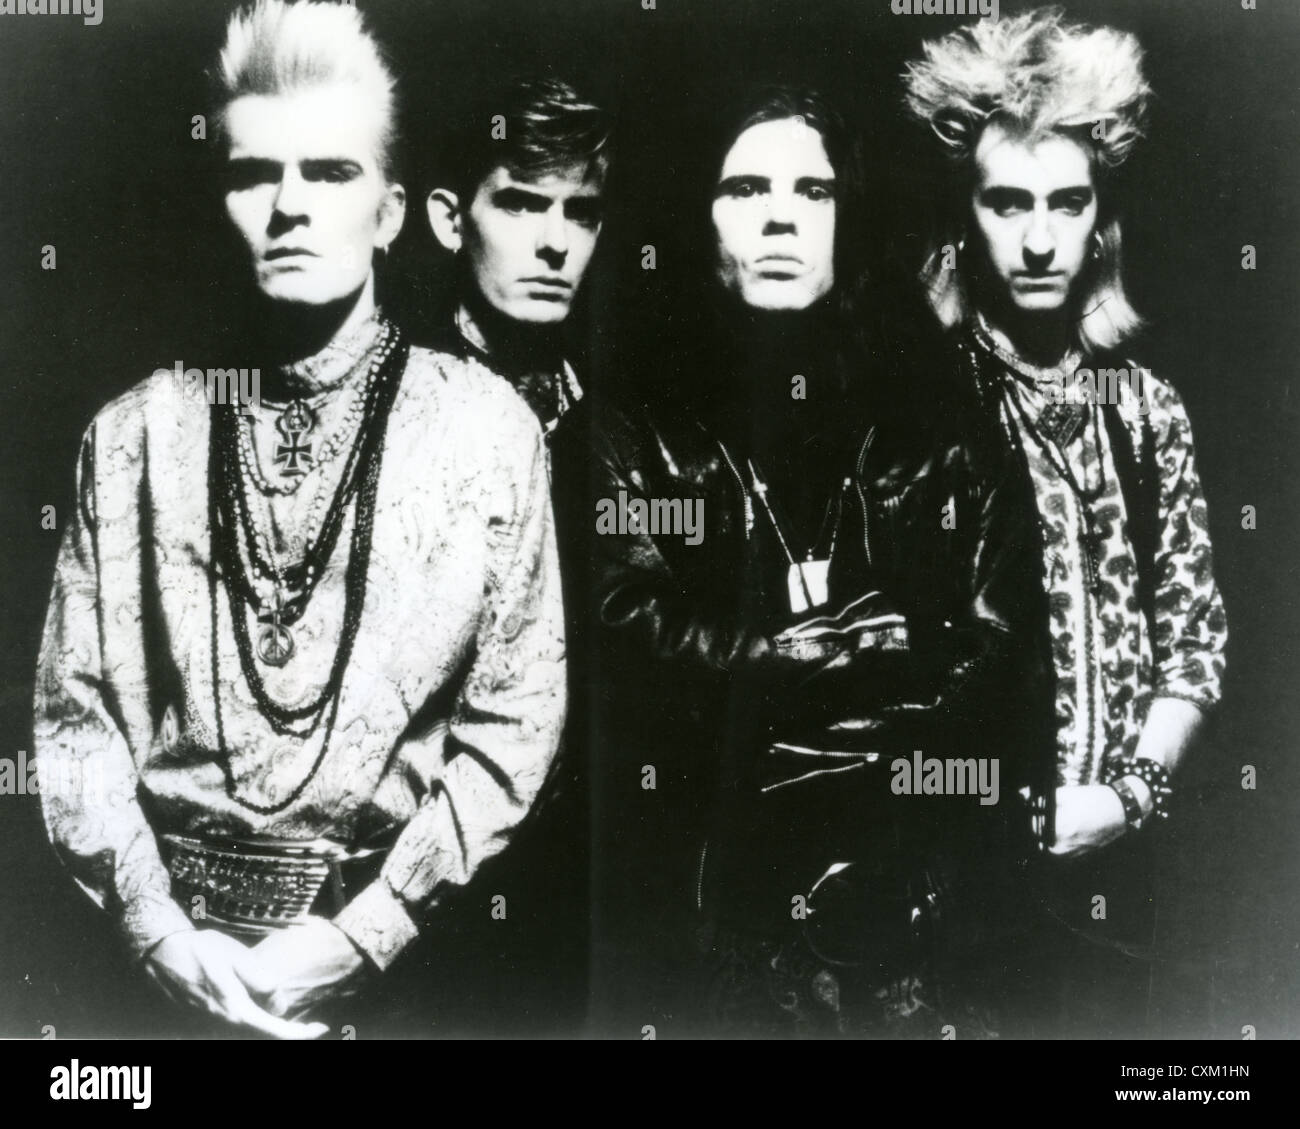 THE CULT Promotional photo of UK rock group about 1990 with Billy Duffy at left and Ian Astbury in black - Stock Image